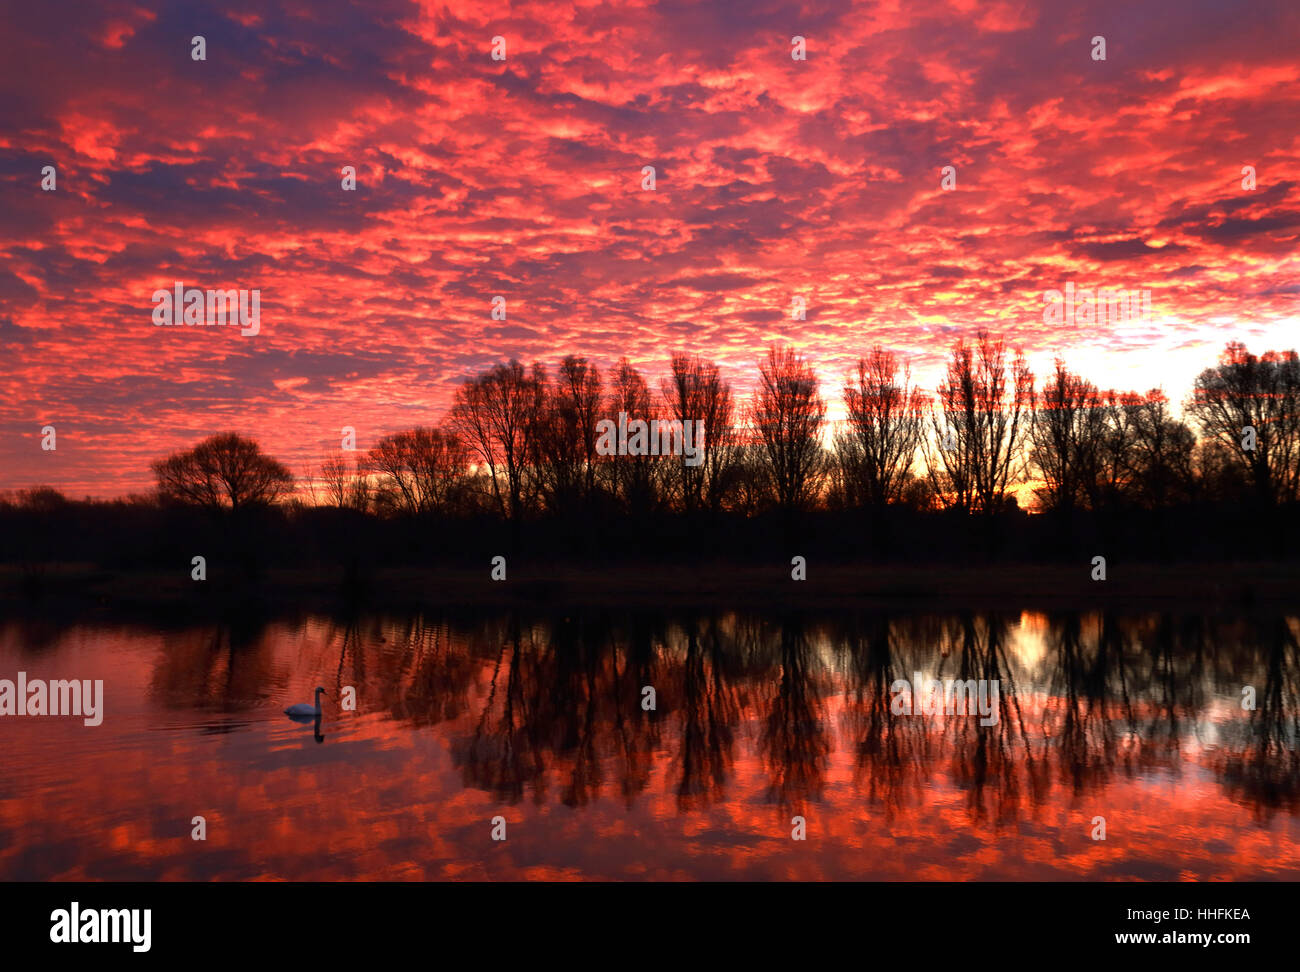 Peterborough, UK. 18th January 2017. The sky looked on fire this morning, as it made the clouds glow red, as a swan - Stock Image